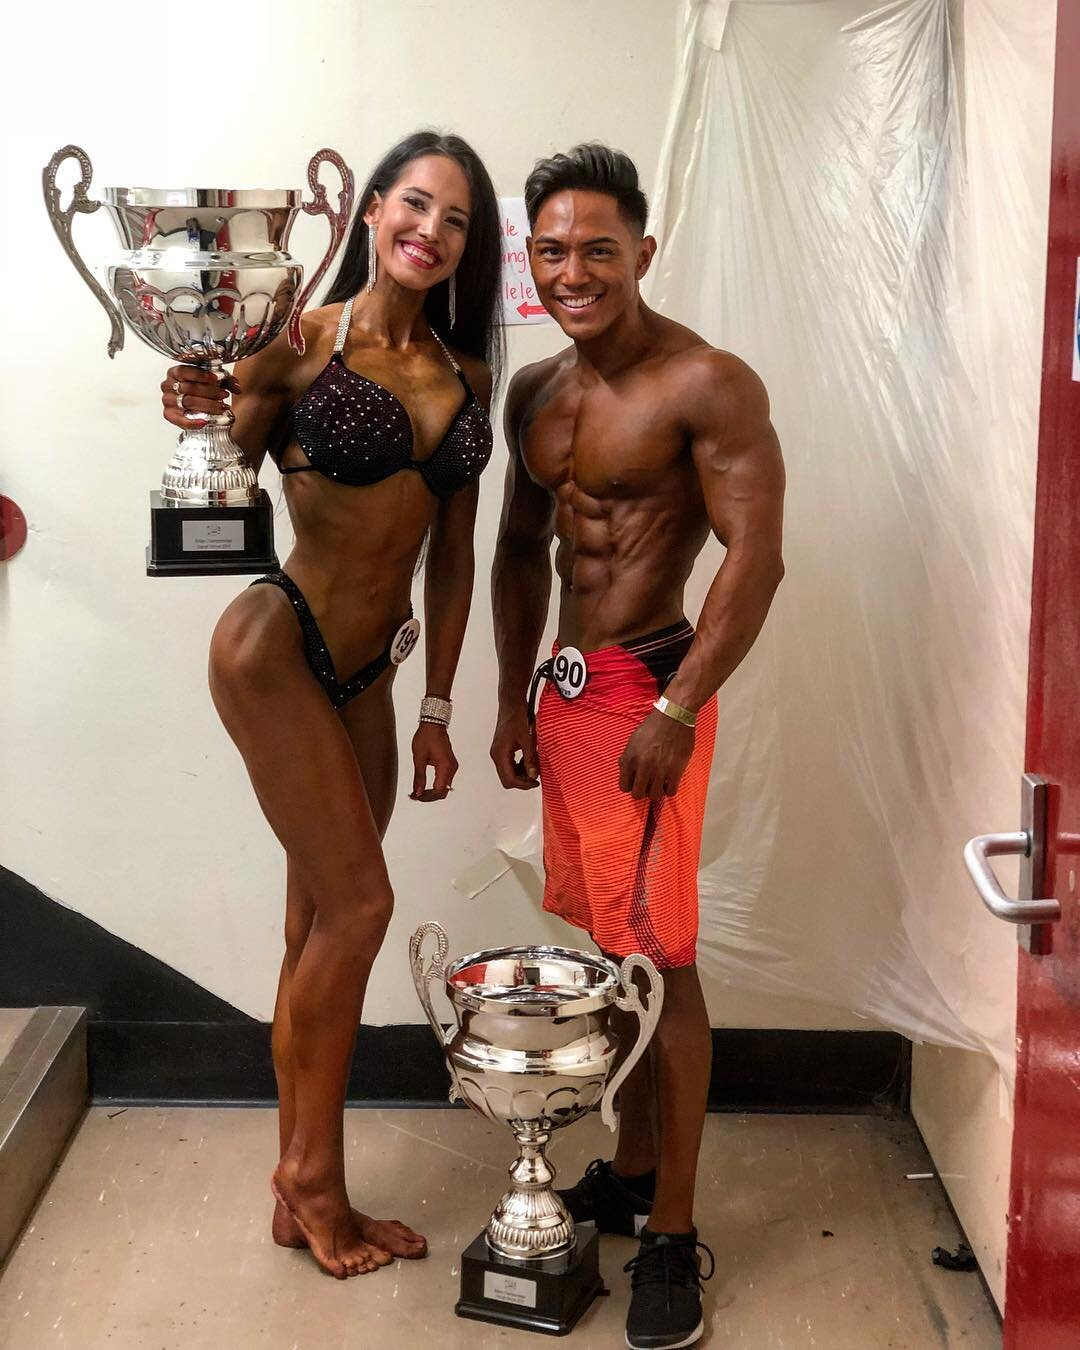 Marta Mila and El Noval, last year's bikini fitness and men's physique overall champions, pose backstage with their trophies.